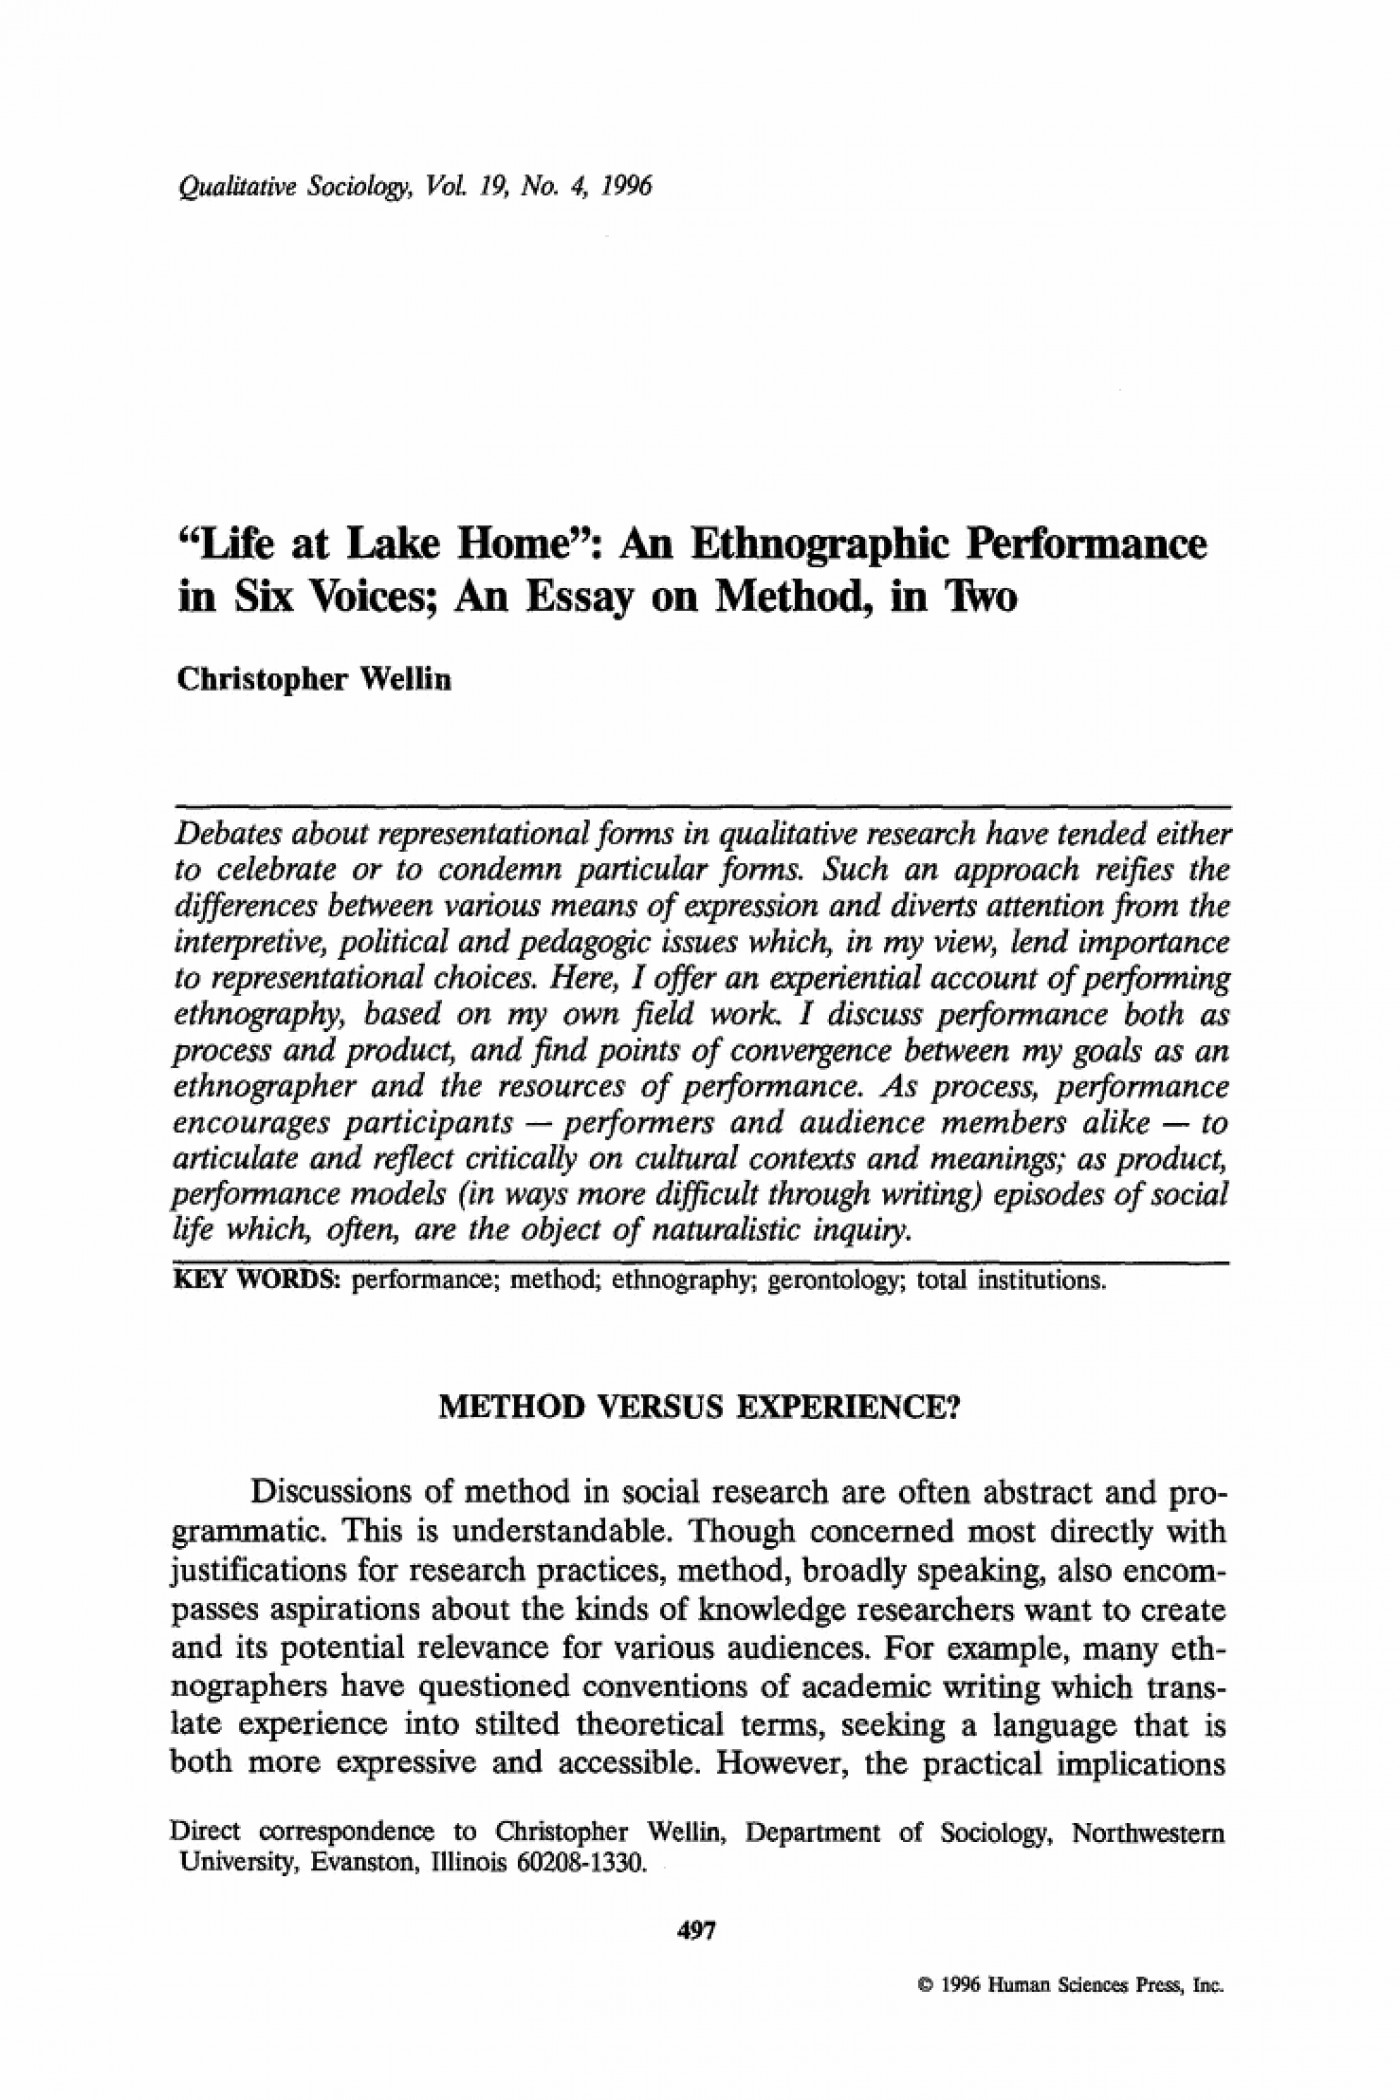 003 Ethnographic Essay Examples Example Profile Interview Of Editable Narrative Paper With Ethnogr Unique Micro Ethnography 1400